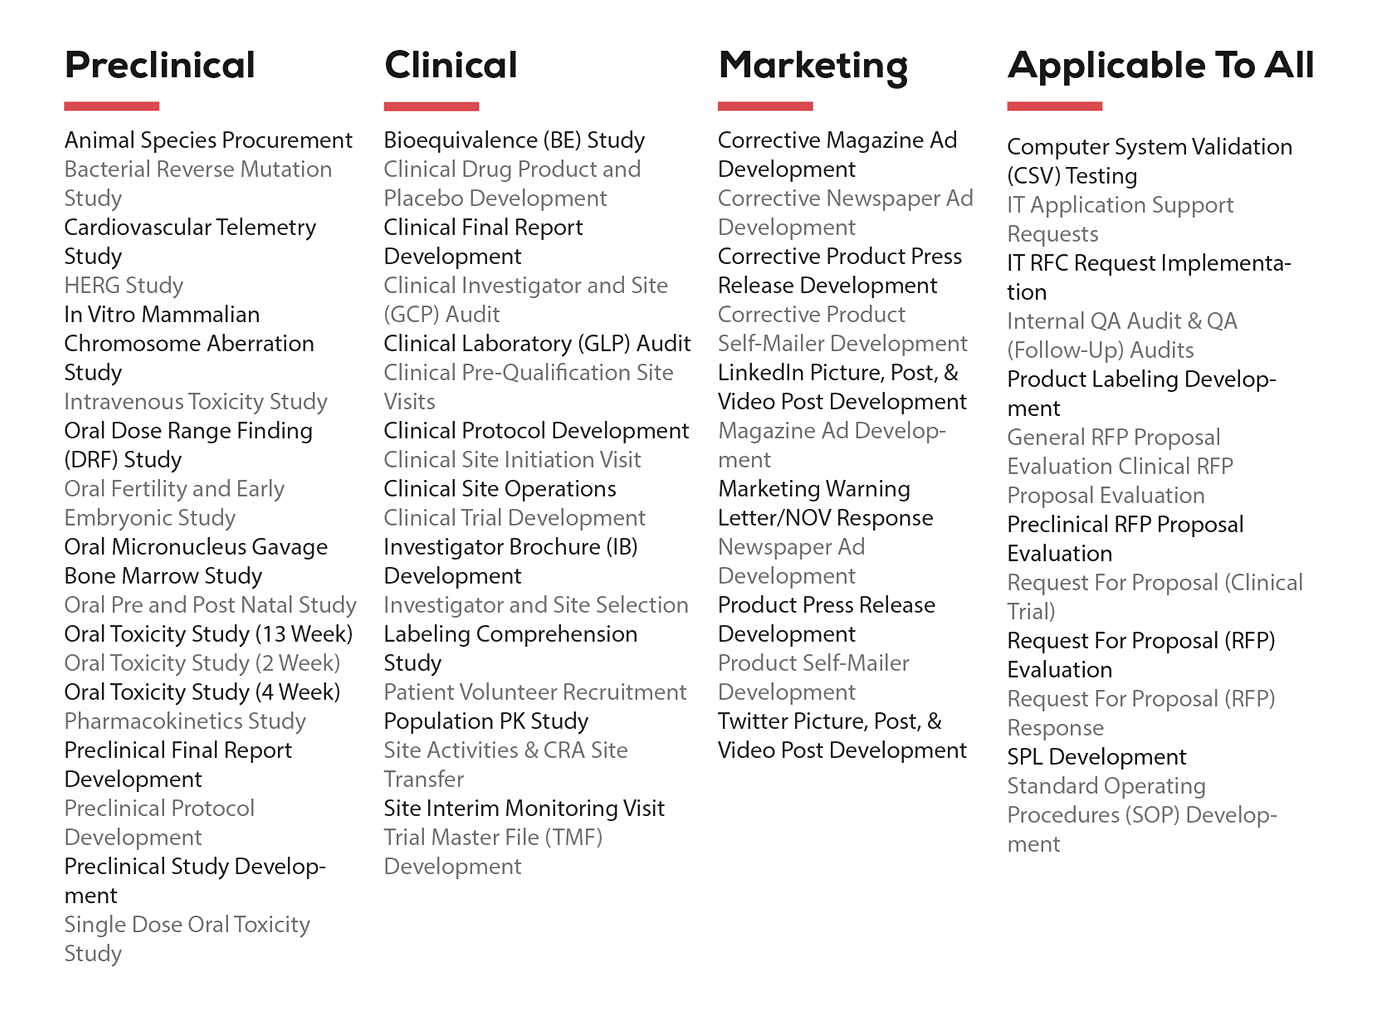 Preclinical, Clinical, Marketing template